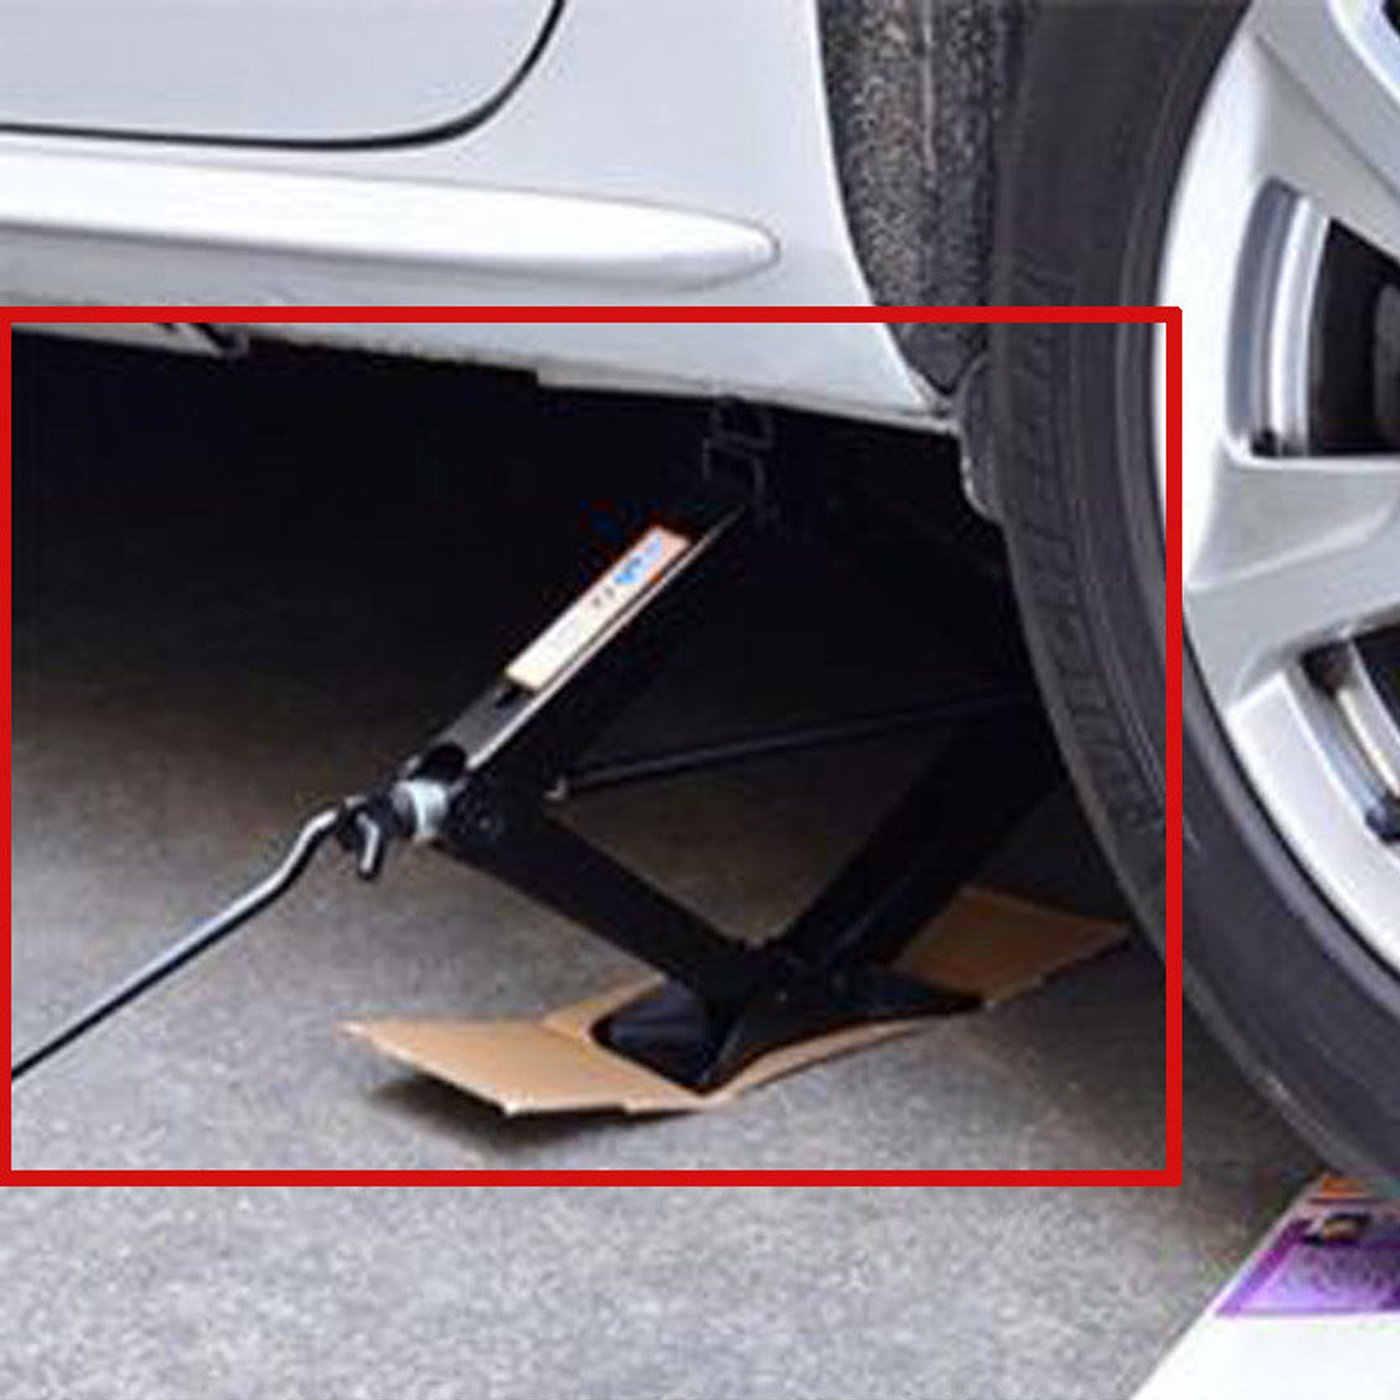 Scissor Jack with Crank Handle Car Tire Repair Kit Emergency for Toyota Camry Corolla Prius Vios - 2 Ton/ 4.2-15 Inch by DICN (Image #6)